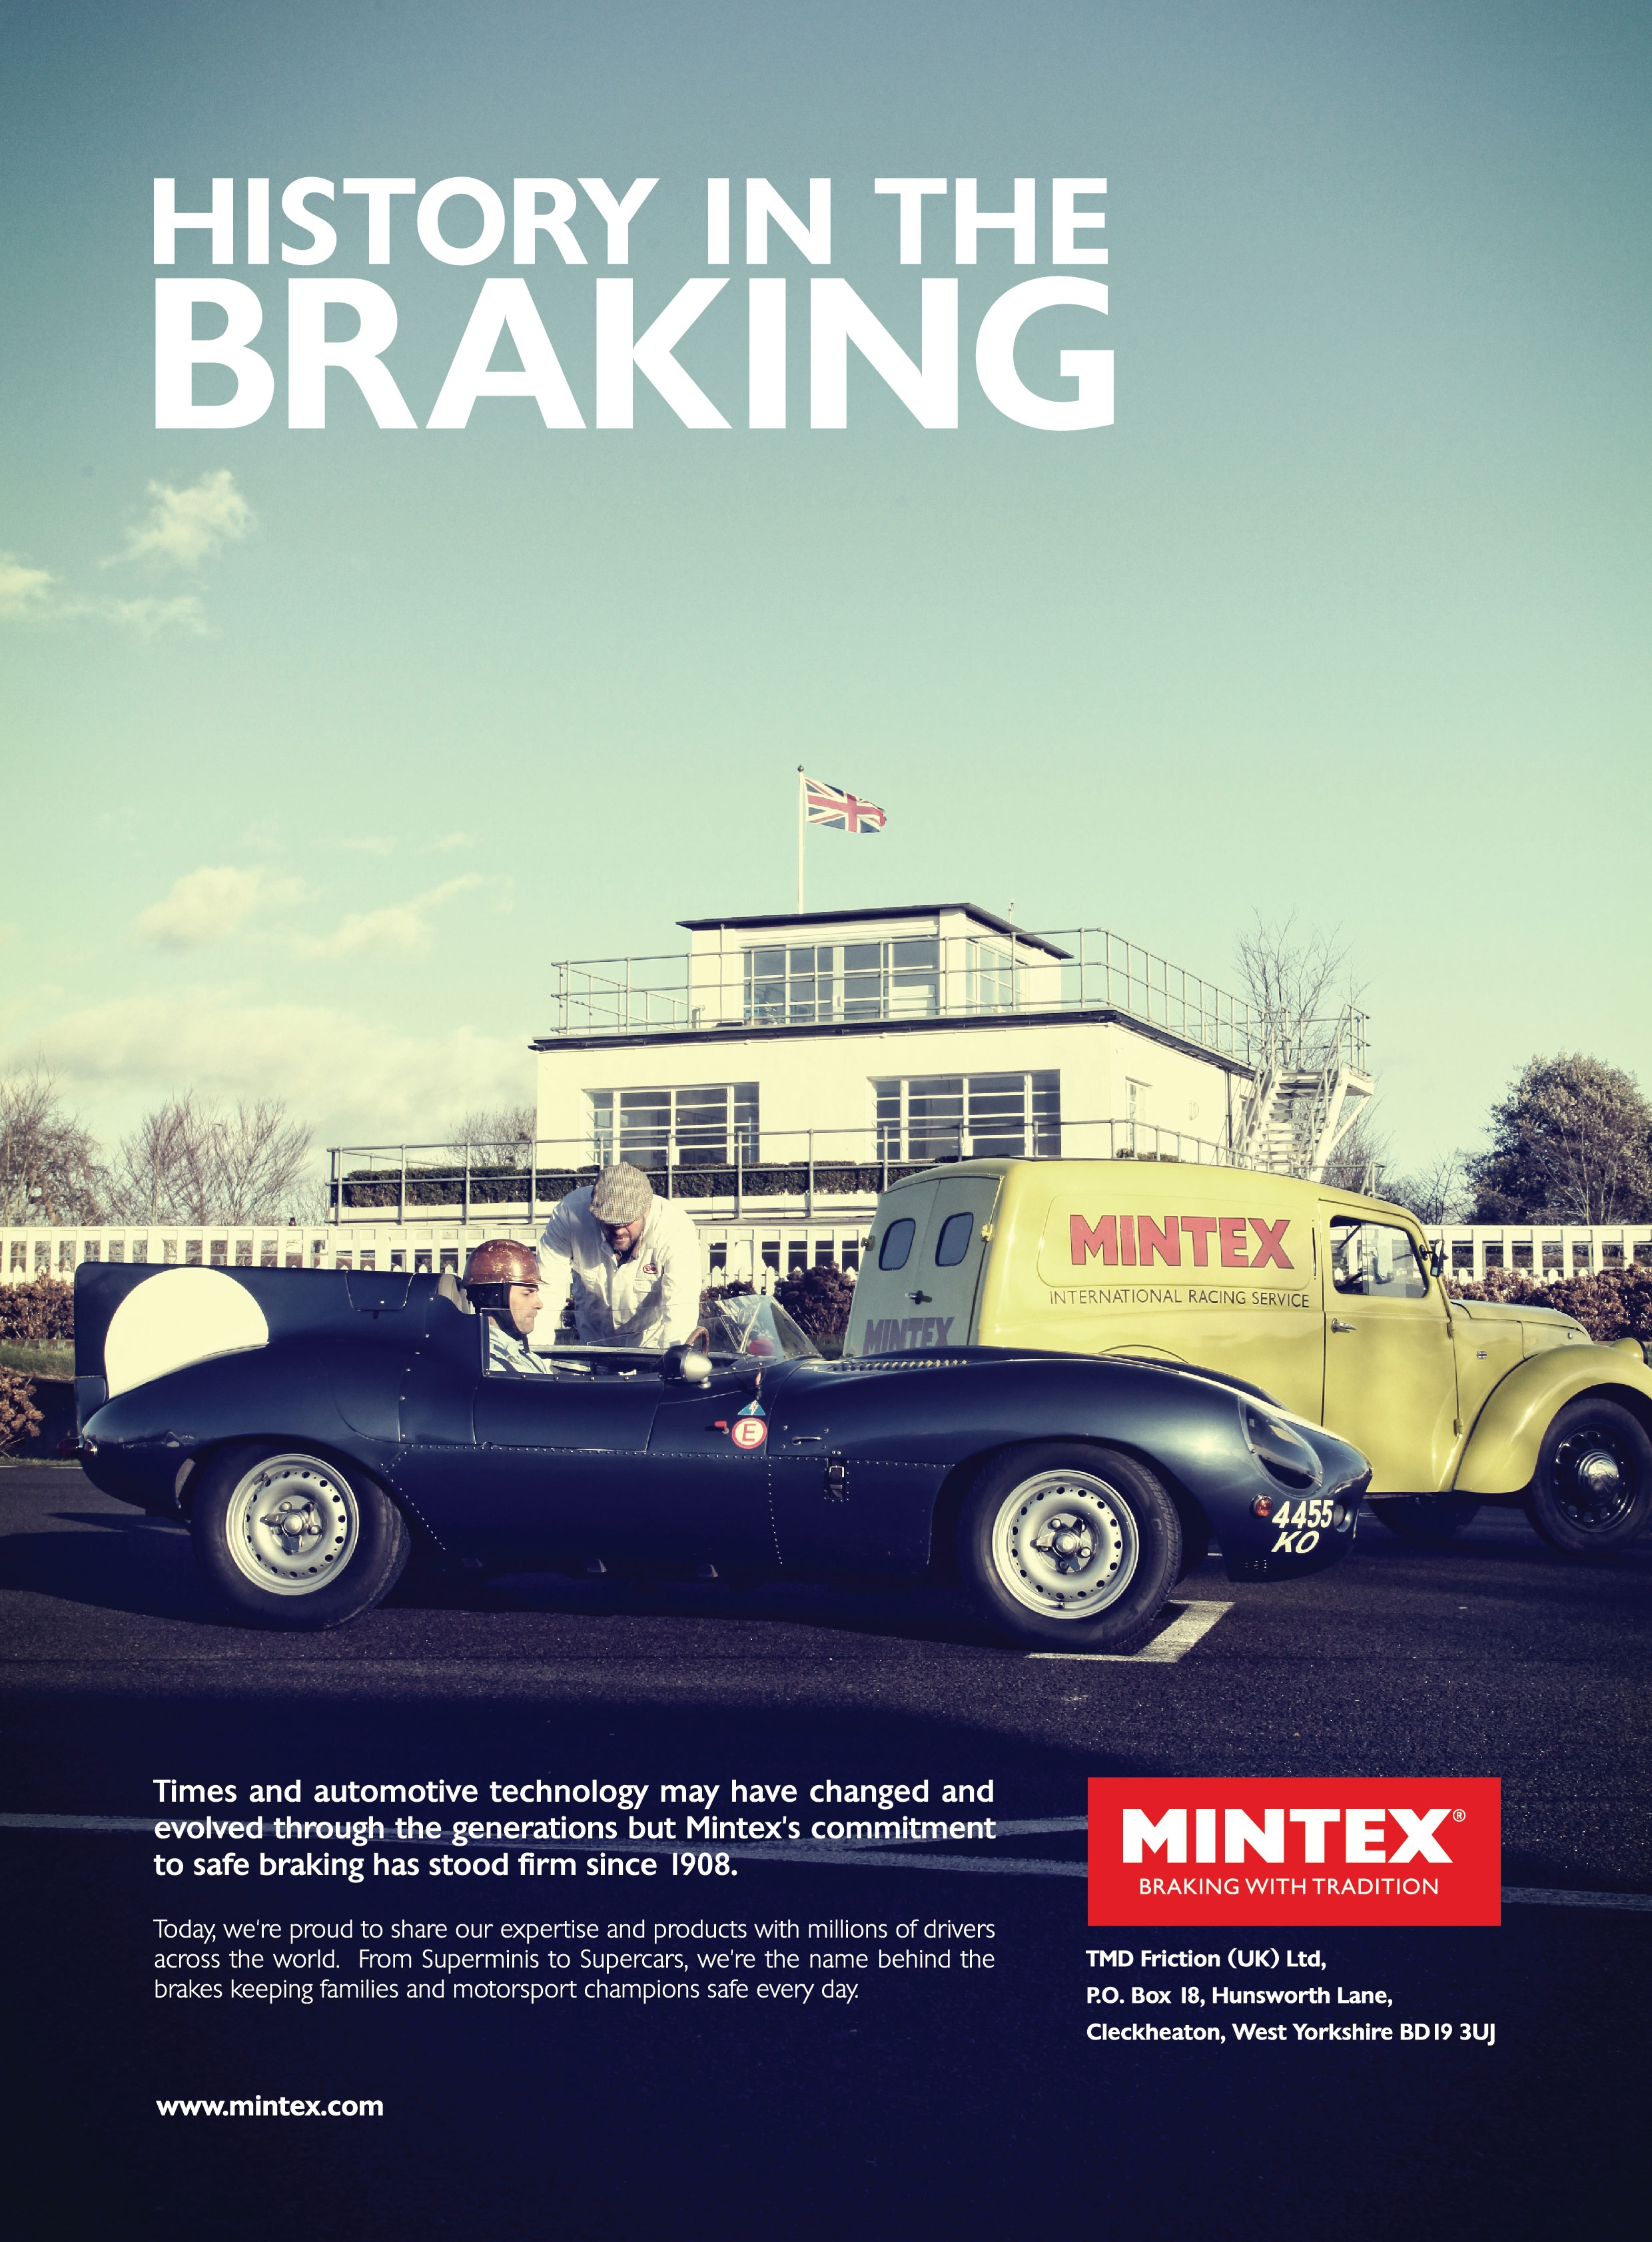 Mintex Brakes Advertising Campaign - Pure Marketing Agency